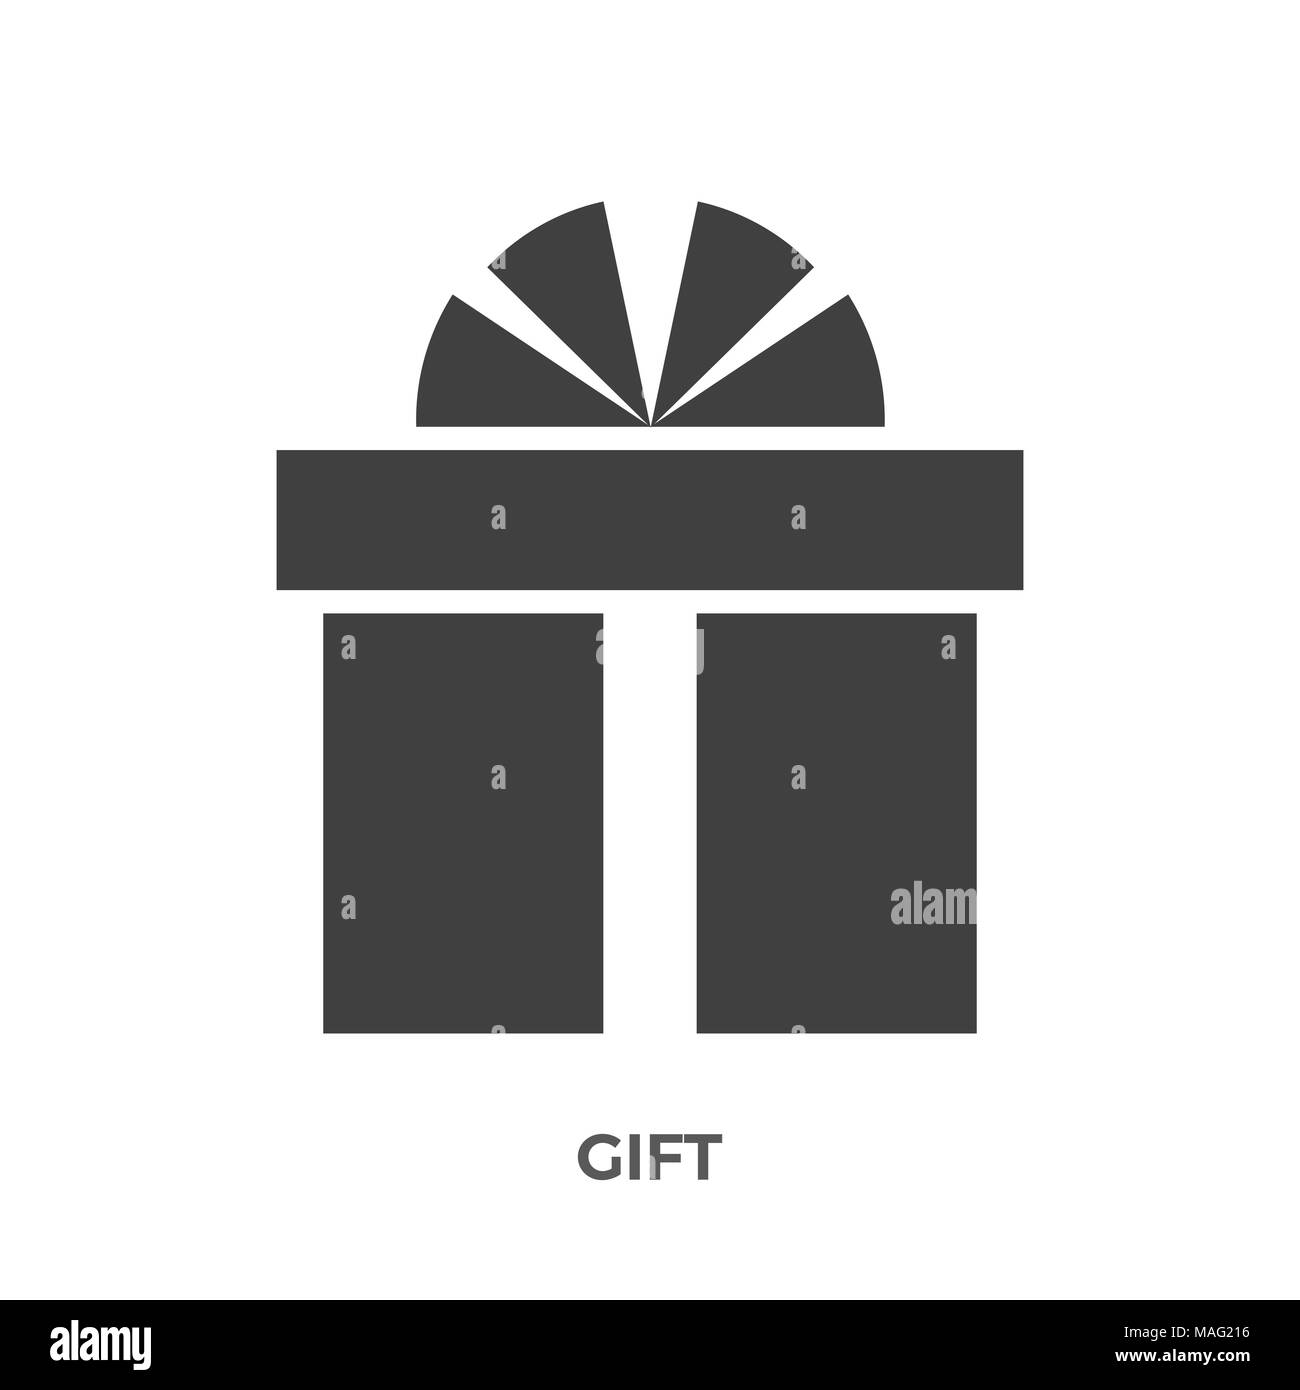 Gift Box Glyph Vector Icon Isolated on the White Background. - Stock Image